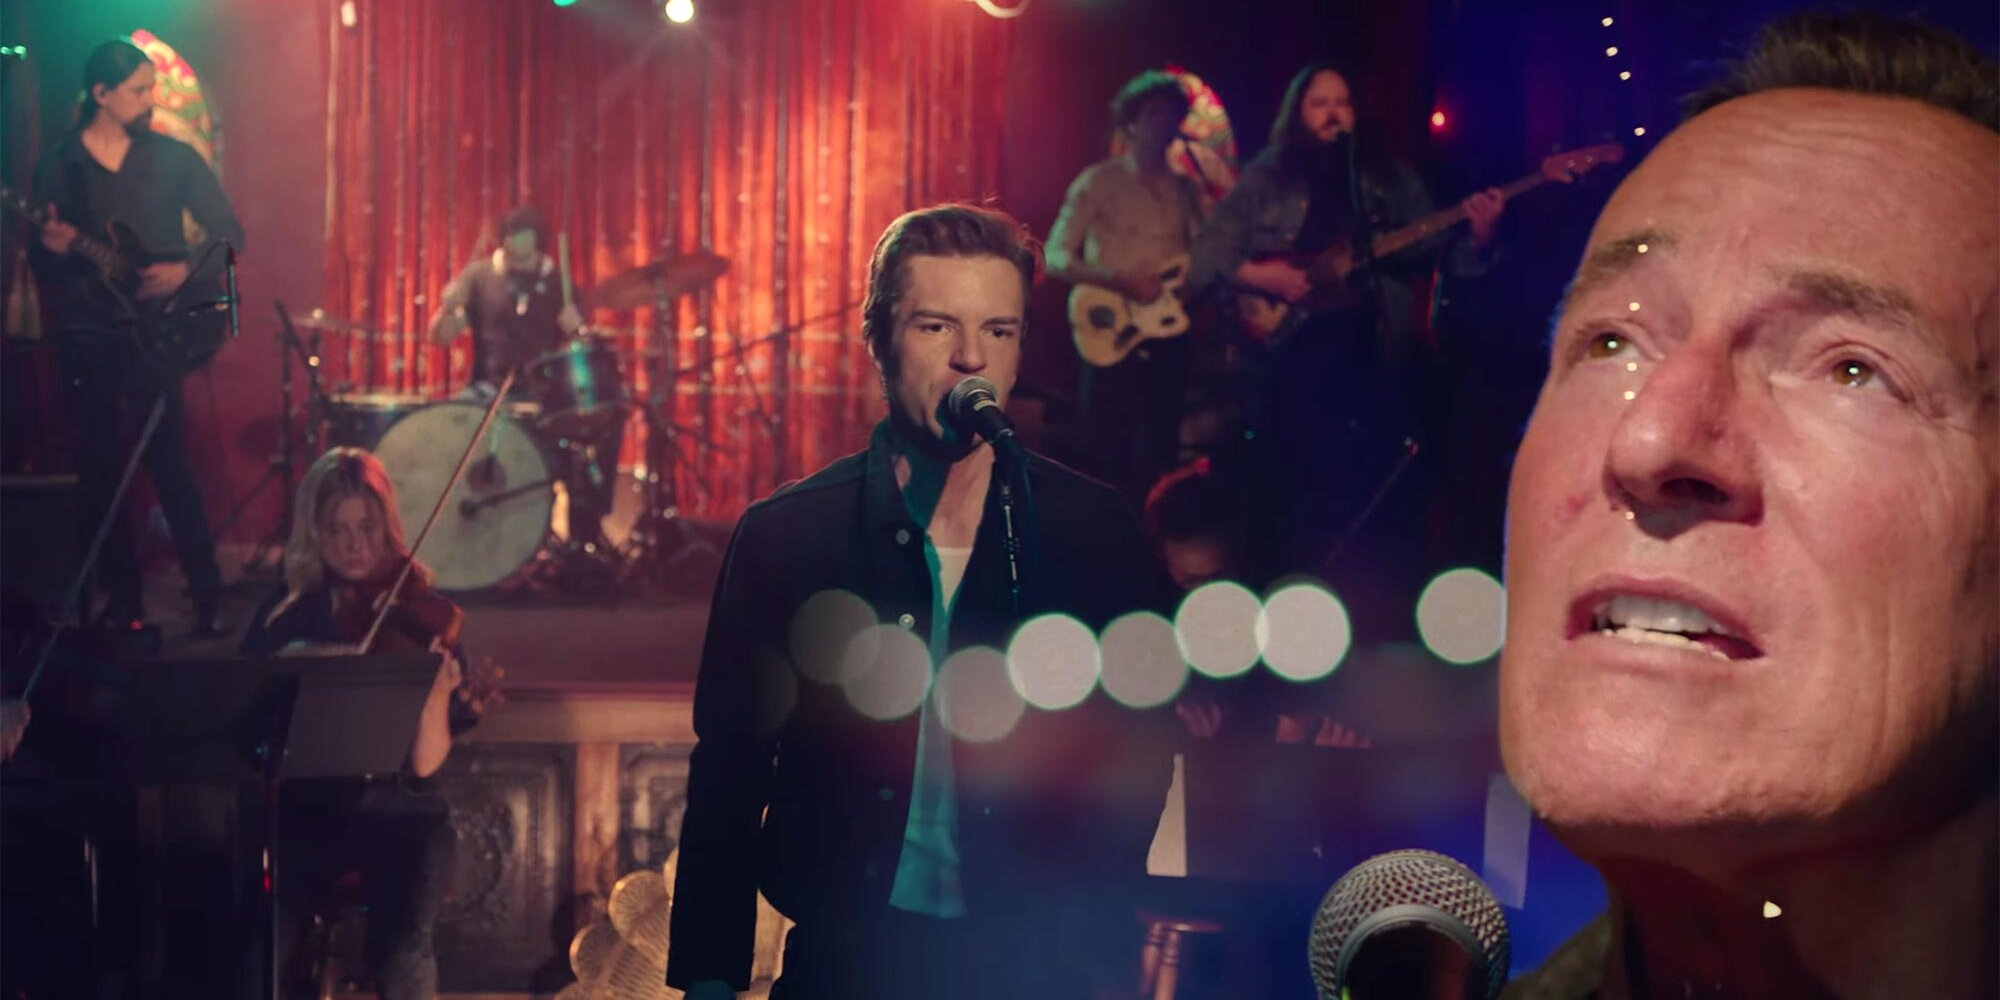 The Killers and Bruce Springsteen perform remake of 'A Dustland Fairytale' for the first time